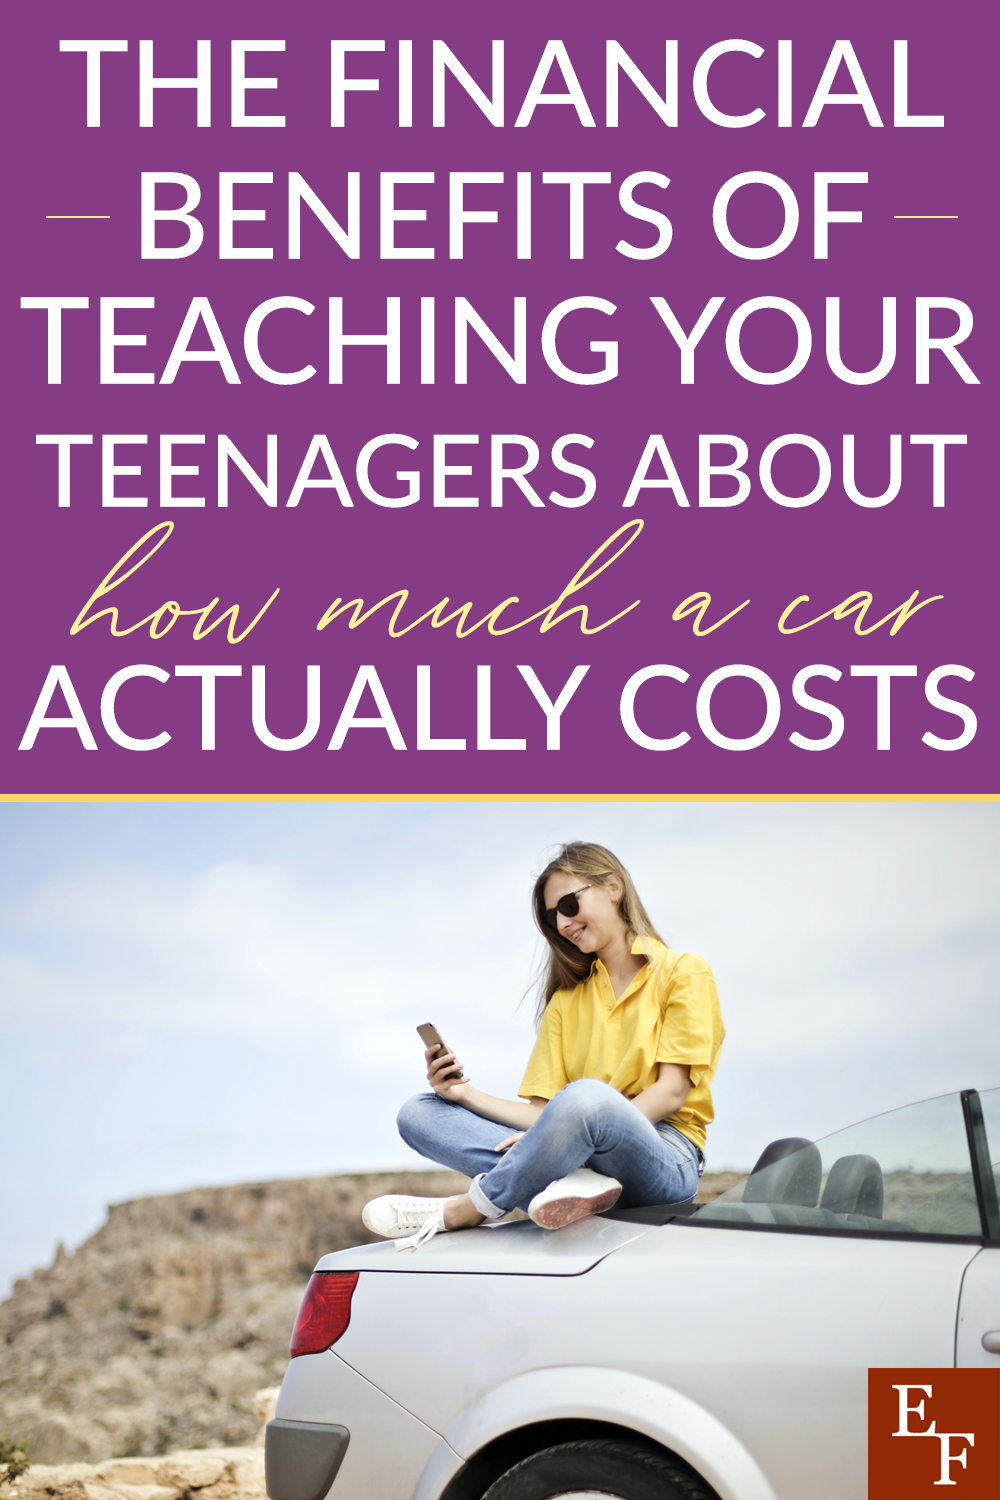 When teenagers start driving, they only think about gas costs. Which is why teaching them about how much a car costs to drive is so important.